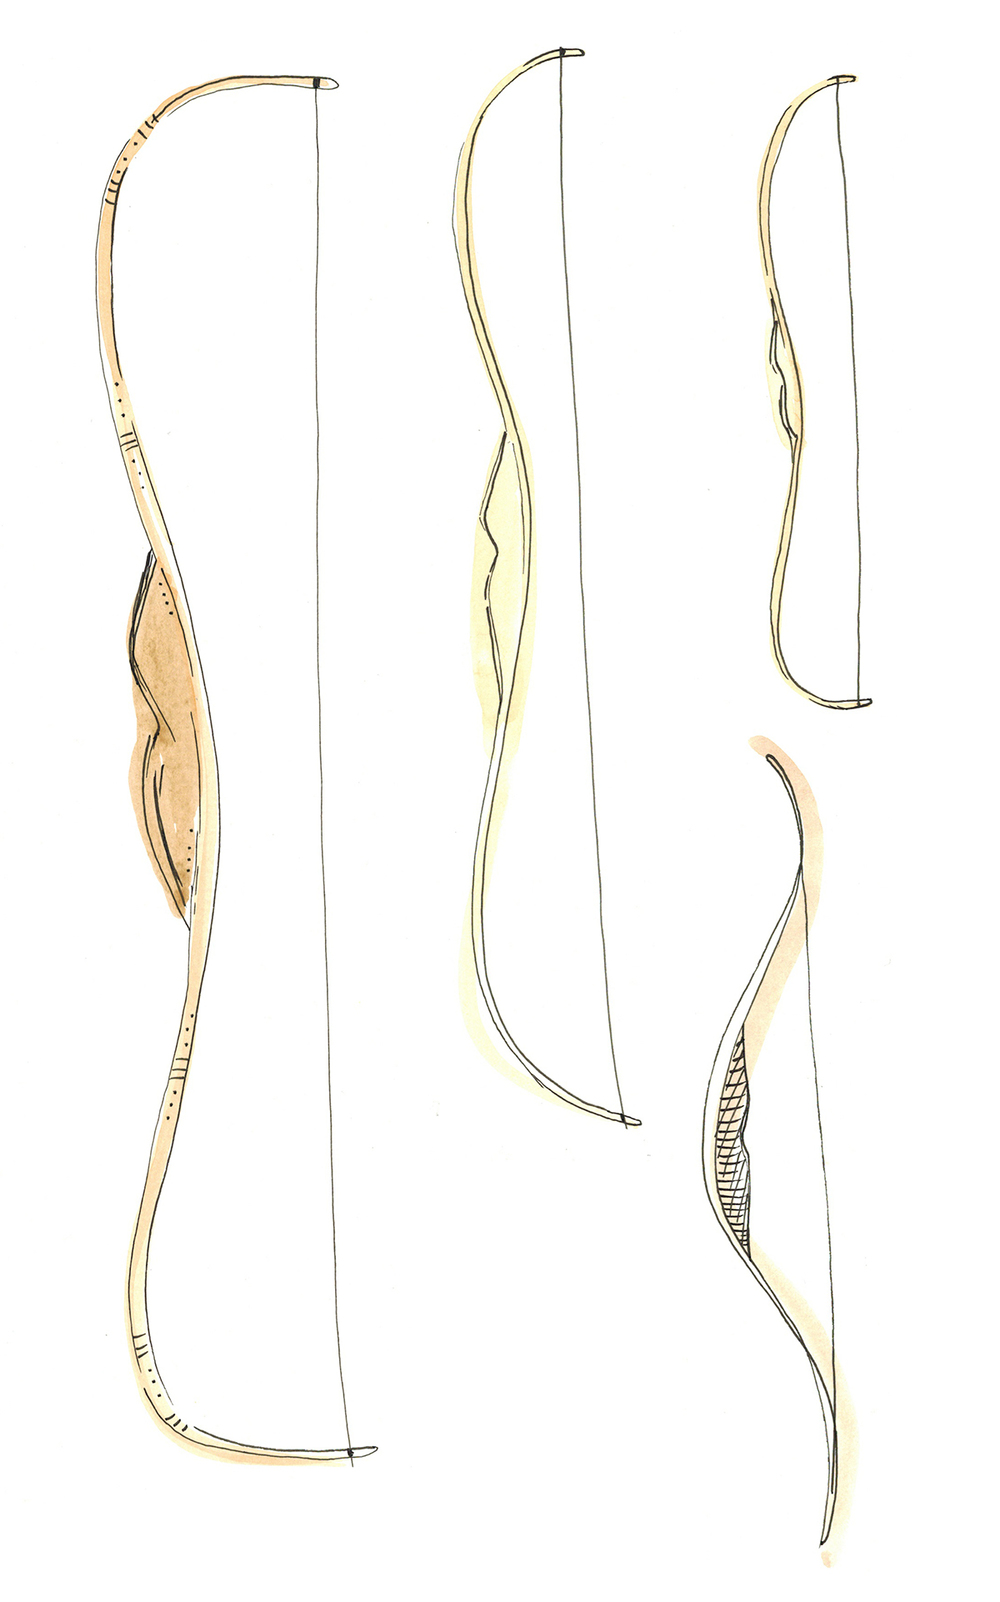 October 11:   Some bows to accompany the archery items I've been doodling.